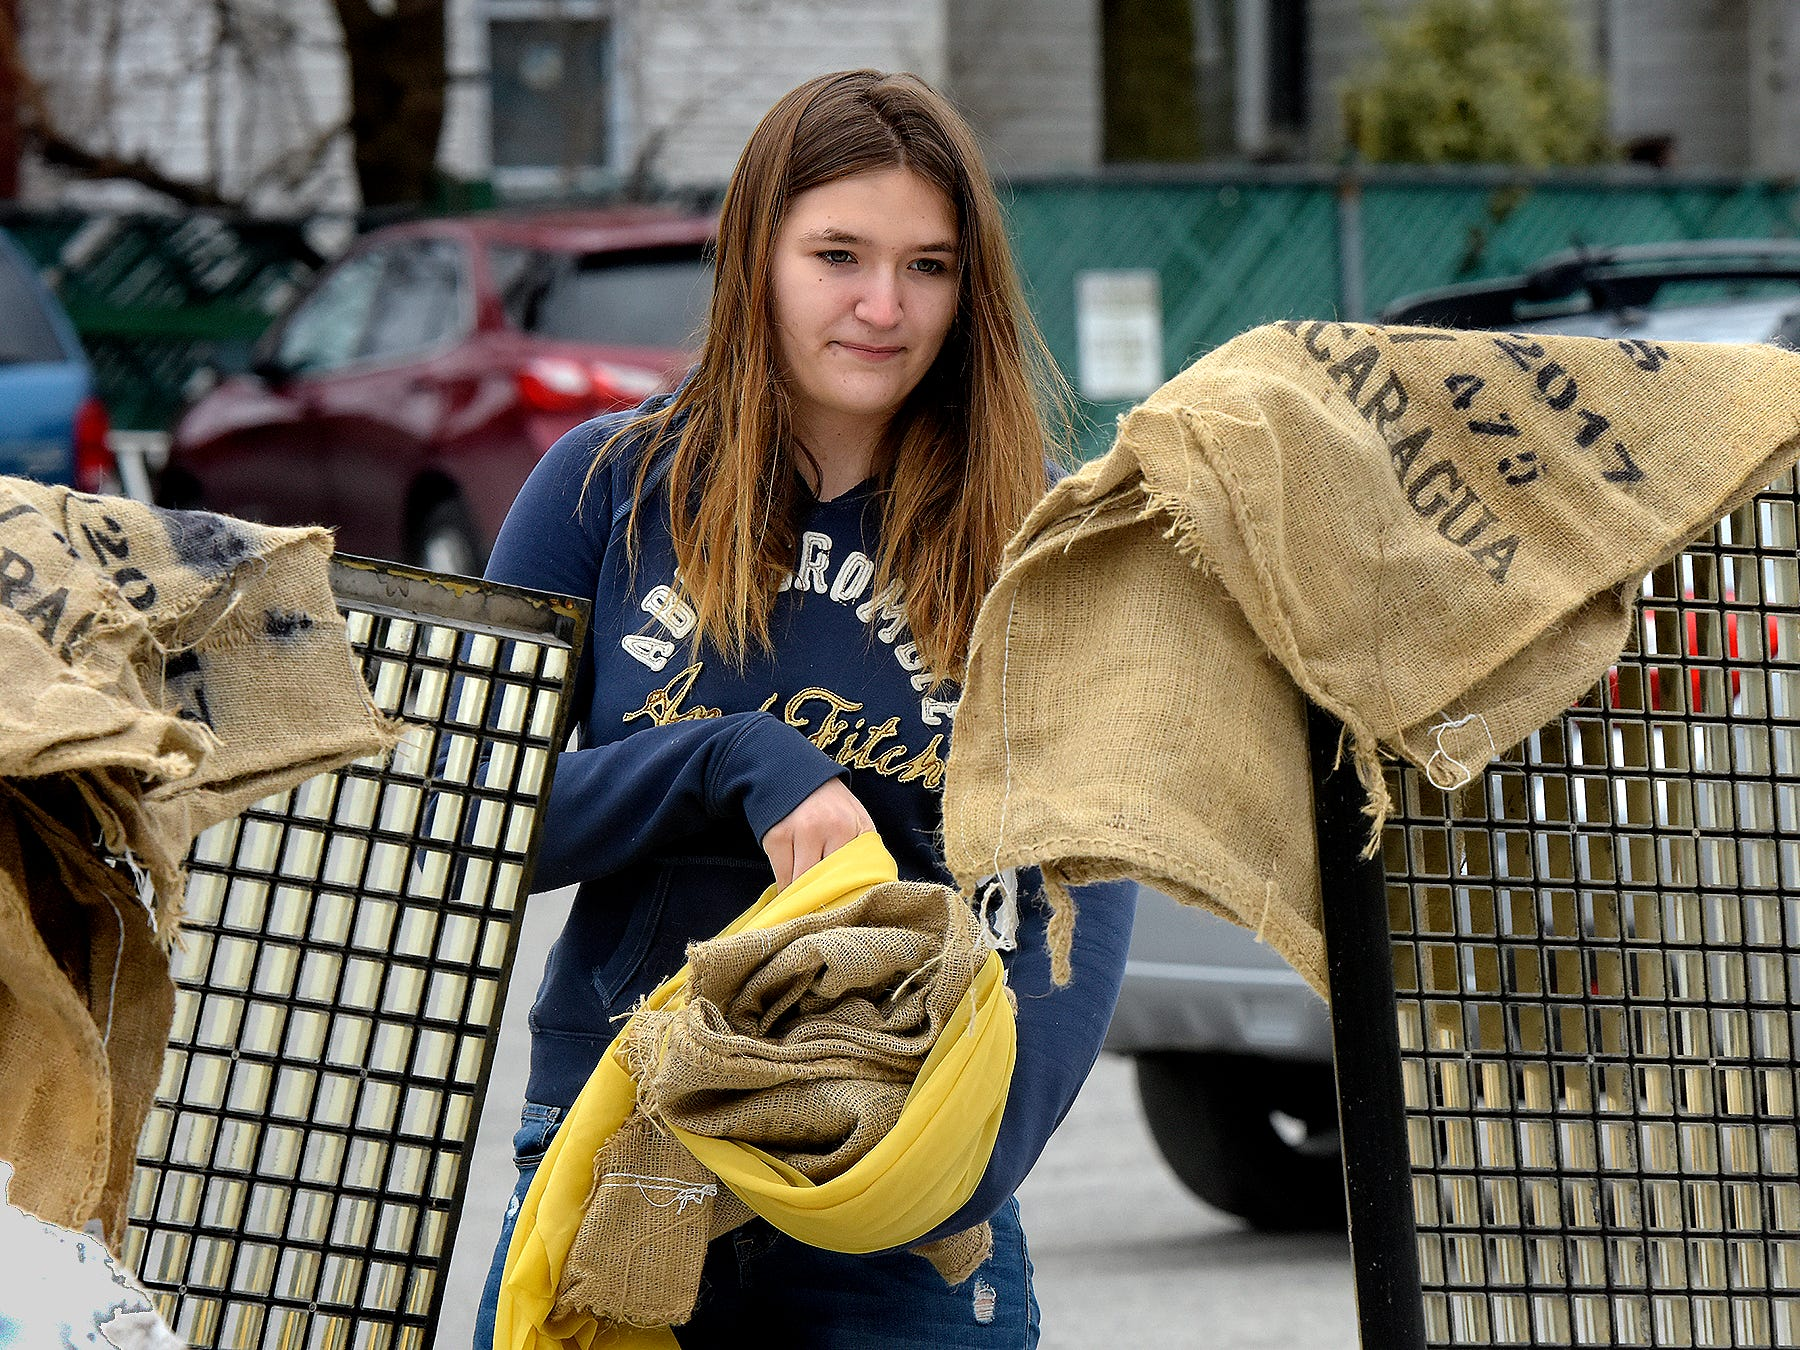 Kennard-Dale High School junior Sophia Castro collects items for her entry in the York County Solid Waste Authority Recycled Art Contest during Picker Day at the architectural salvage warehouse Refindings in York City Saturday, Feb. 23, 2019. The waste authority is sponsoring the fifth annual contest for York County high school students to promote recycling and celebrate Earth Day. Students create sculptures by mid-April from the materials donated by Refindings and the contest exhibit will be on display in the Marketview Arts Gallery, 37 W. Philadelphia St., beginning Sunday, April 14. Contest winners will be announced there during an awards event April 18. Bill Kalina photo